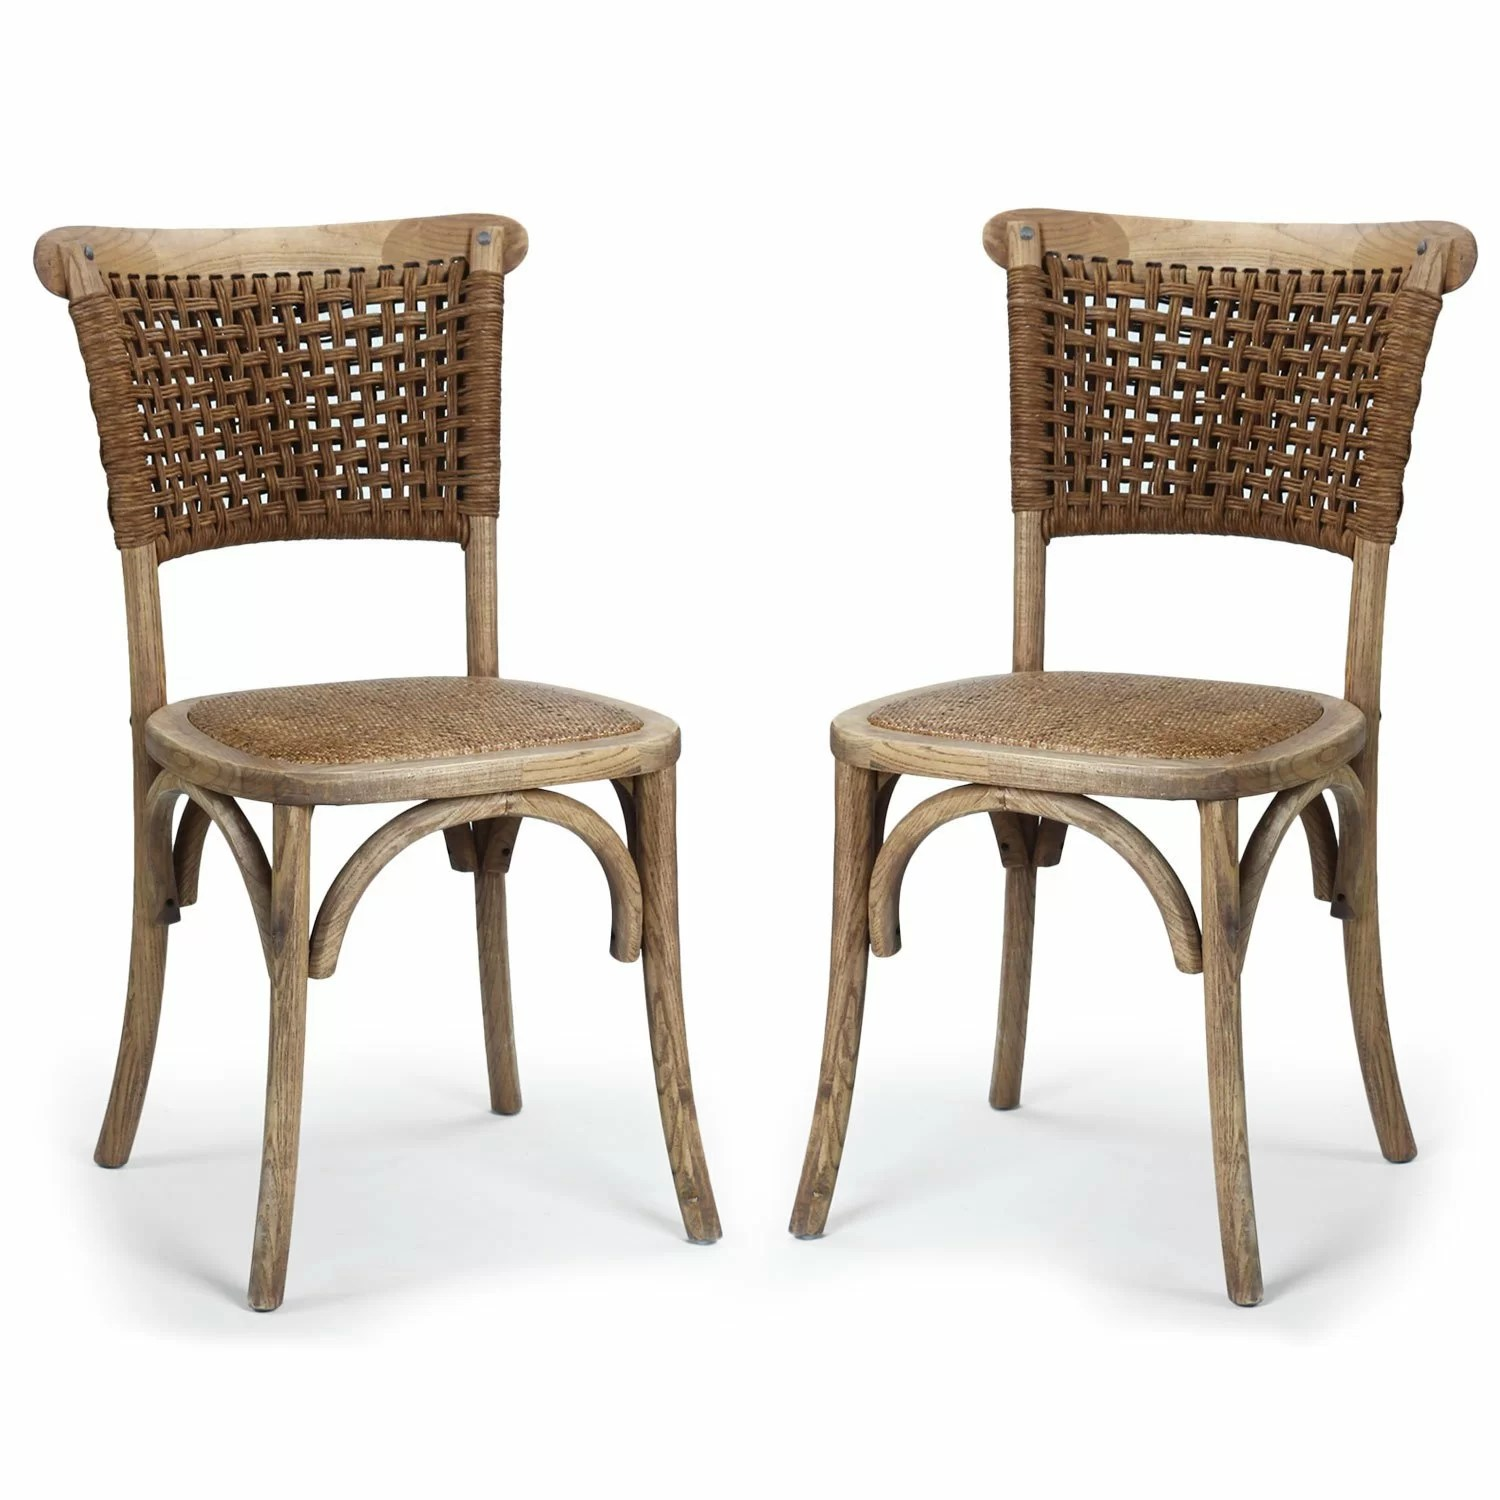 Unfinished Wood Dining Chairs Adecotrading Dining Cane Solid Wood Dining Chair And Reviews